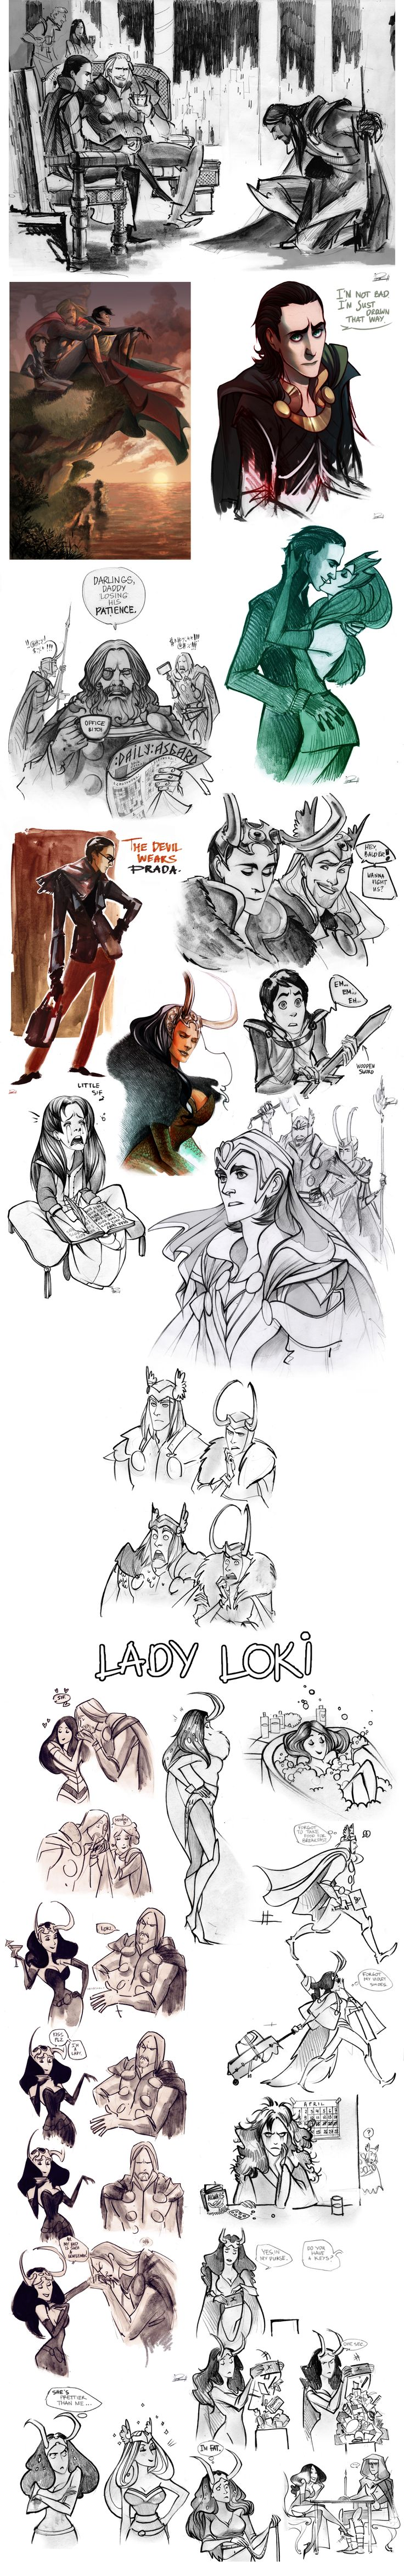 Loki and Thor. Sometimes i cry when i see phobs' art...ITS SO BEAUTIFUL *SOBS IN CORNER*